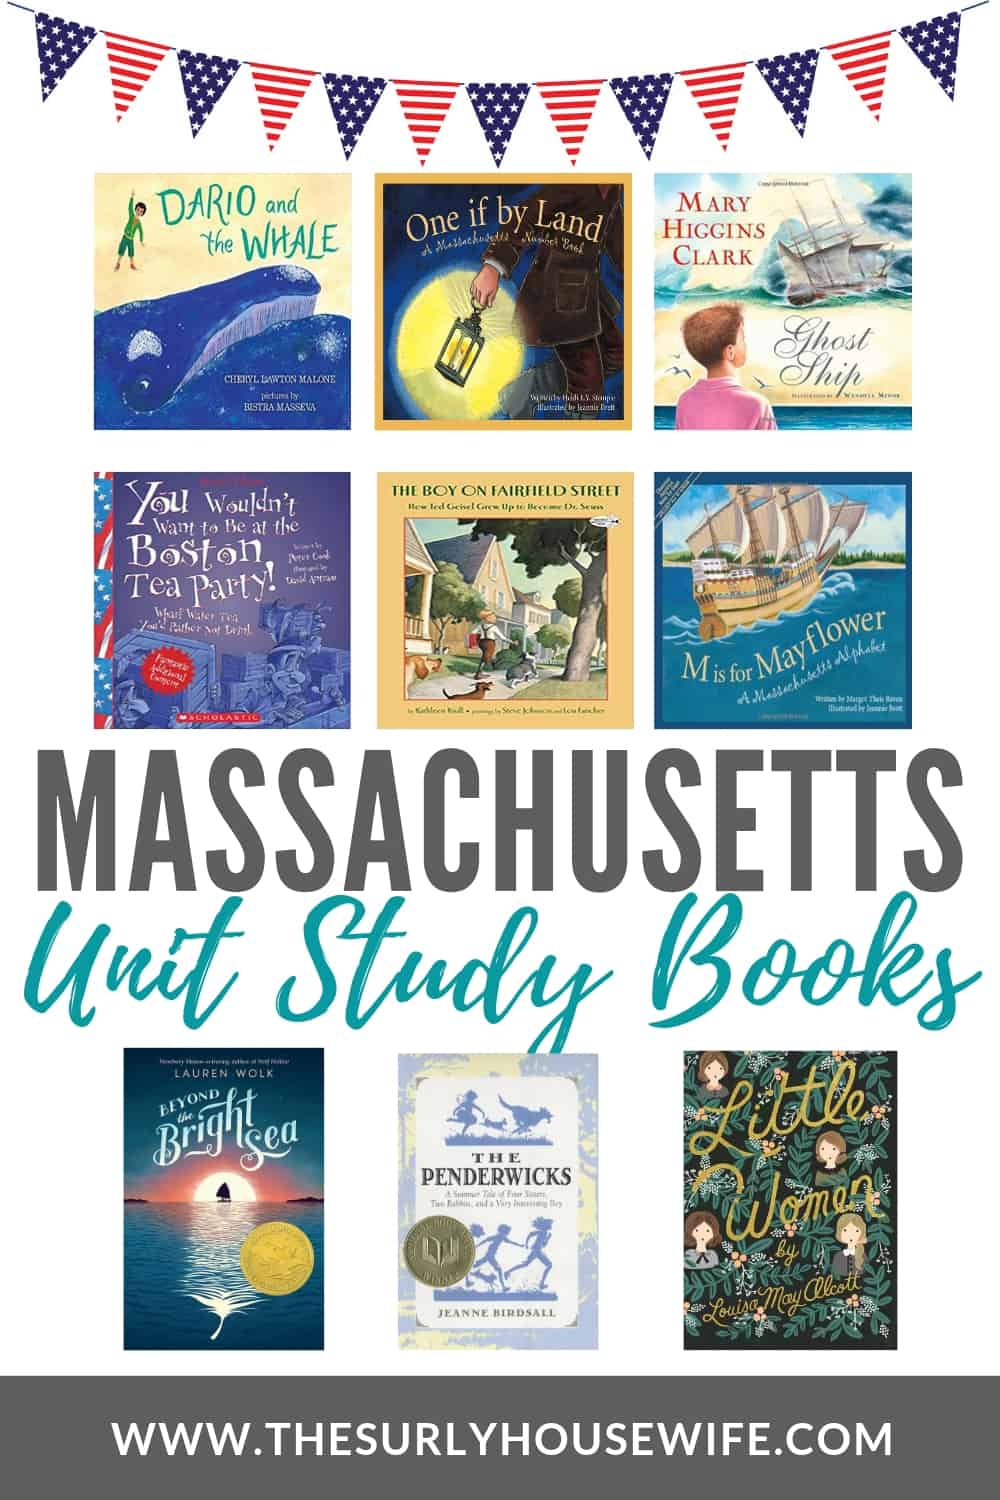 If you are studying Massachusetts with your kids, check out this post for 20 Massachusetts unit study books you will love!